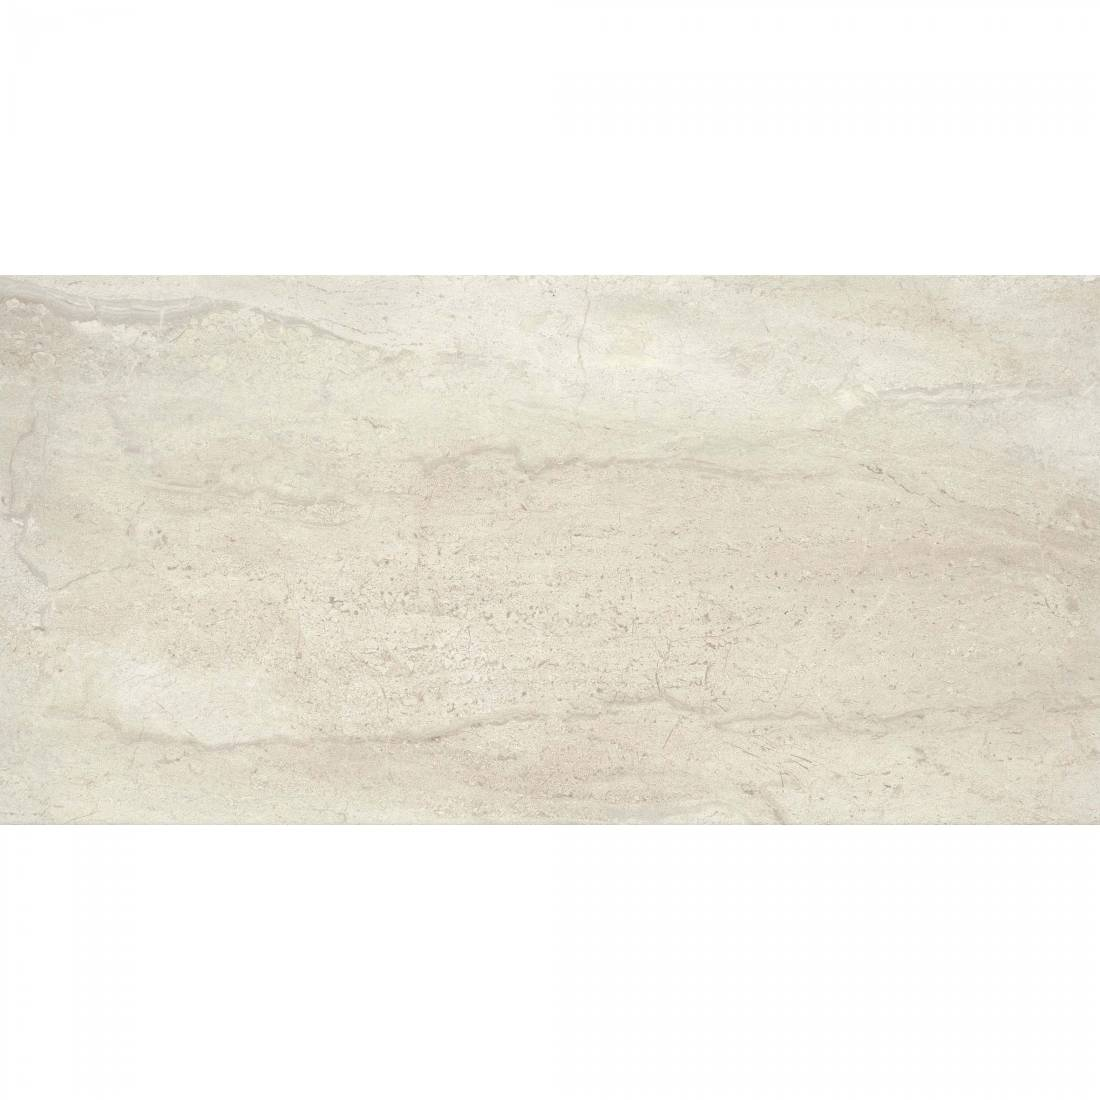 Bellini 30x60 Cream Matt 1